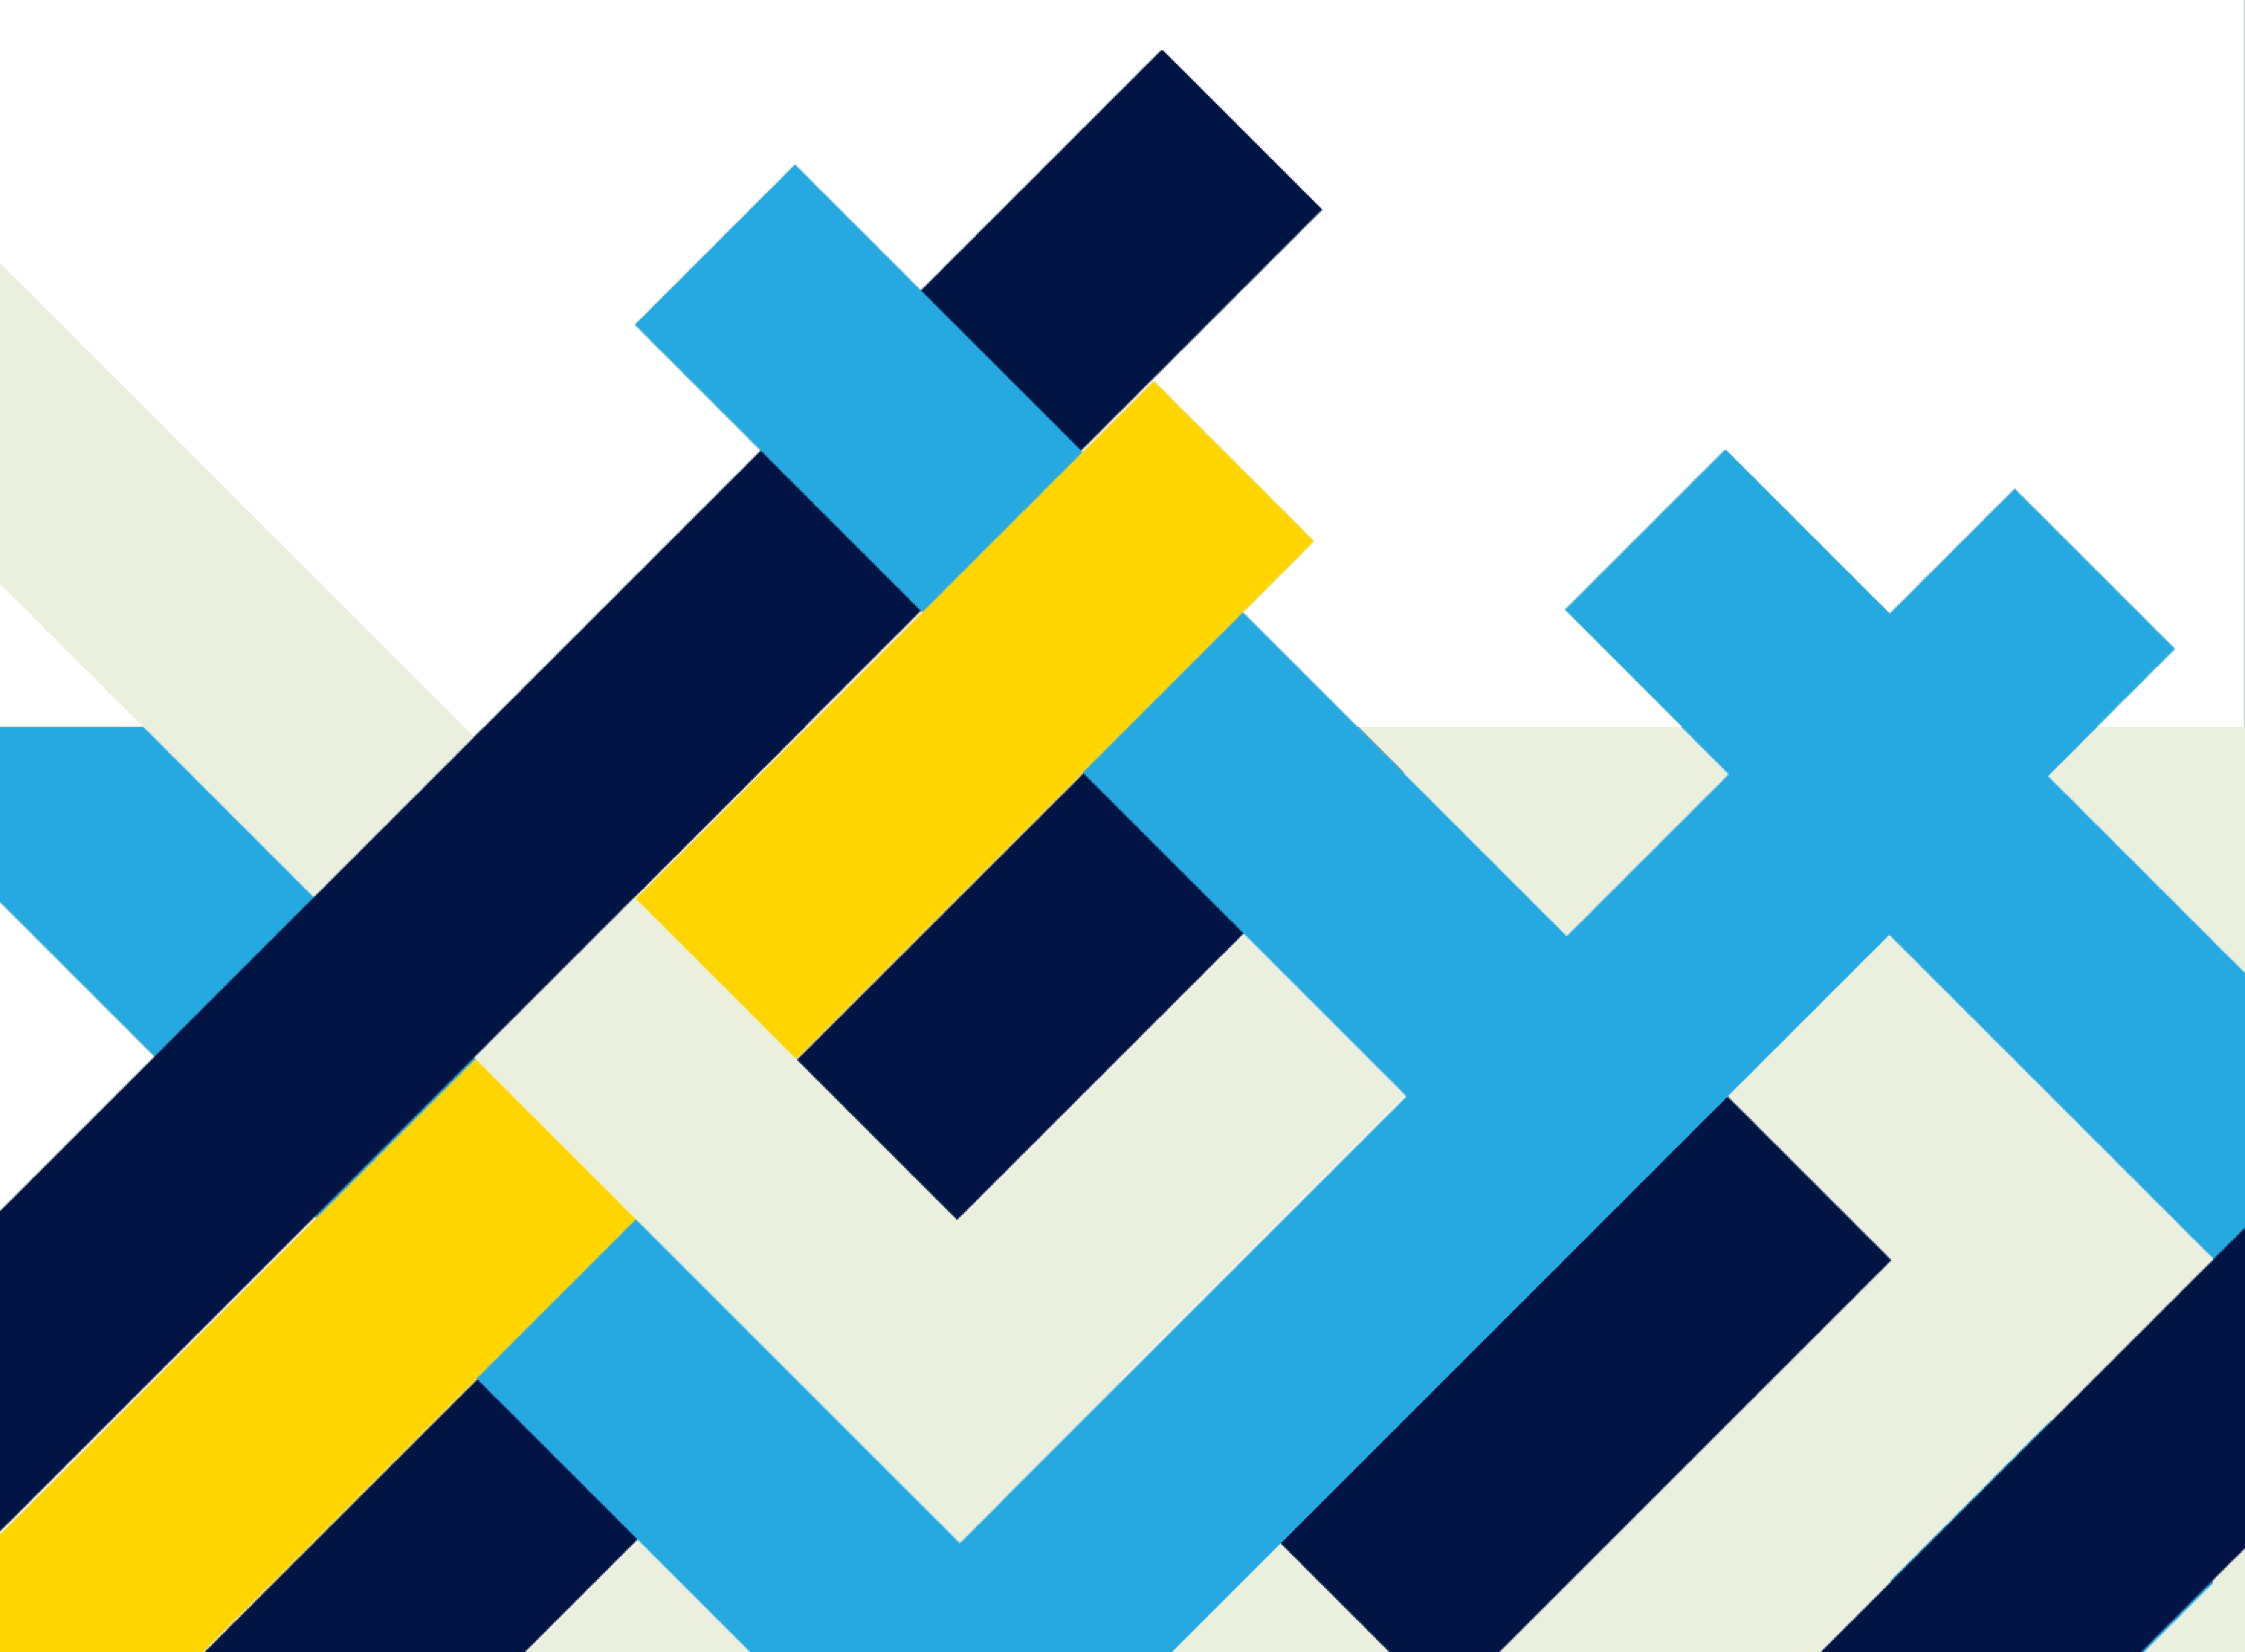 An illustration using light blue, yellow, navy blue, beige and white, all colours synonymous with UrbanBetter and Oni et al